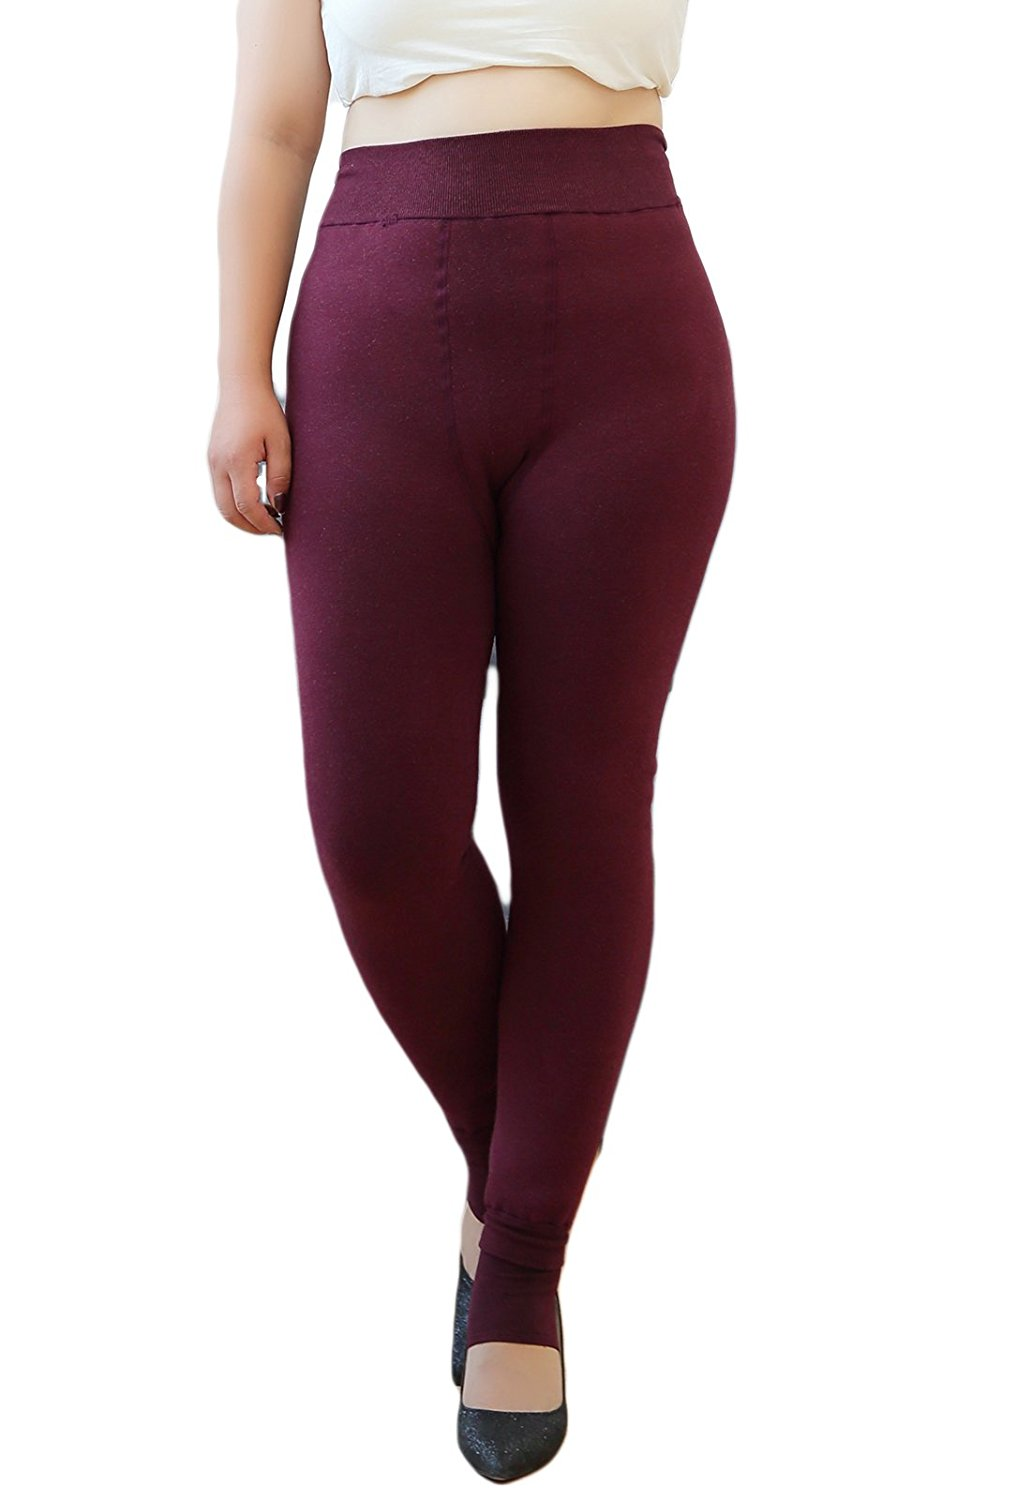 ecb6078c5 Get Quotations · Winter Warm Plus Size Leggings High Waisted Fleece Lined  Tummy Control Leggings Lightweight Extreme Stretchy Chunky